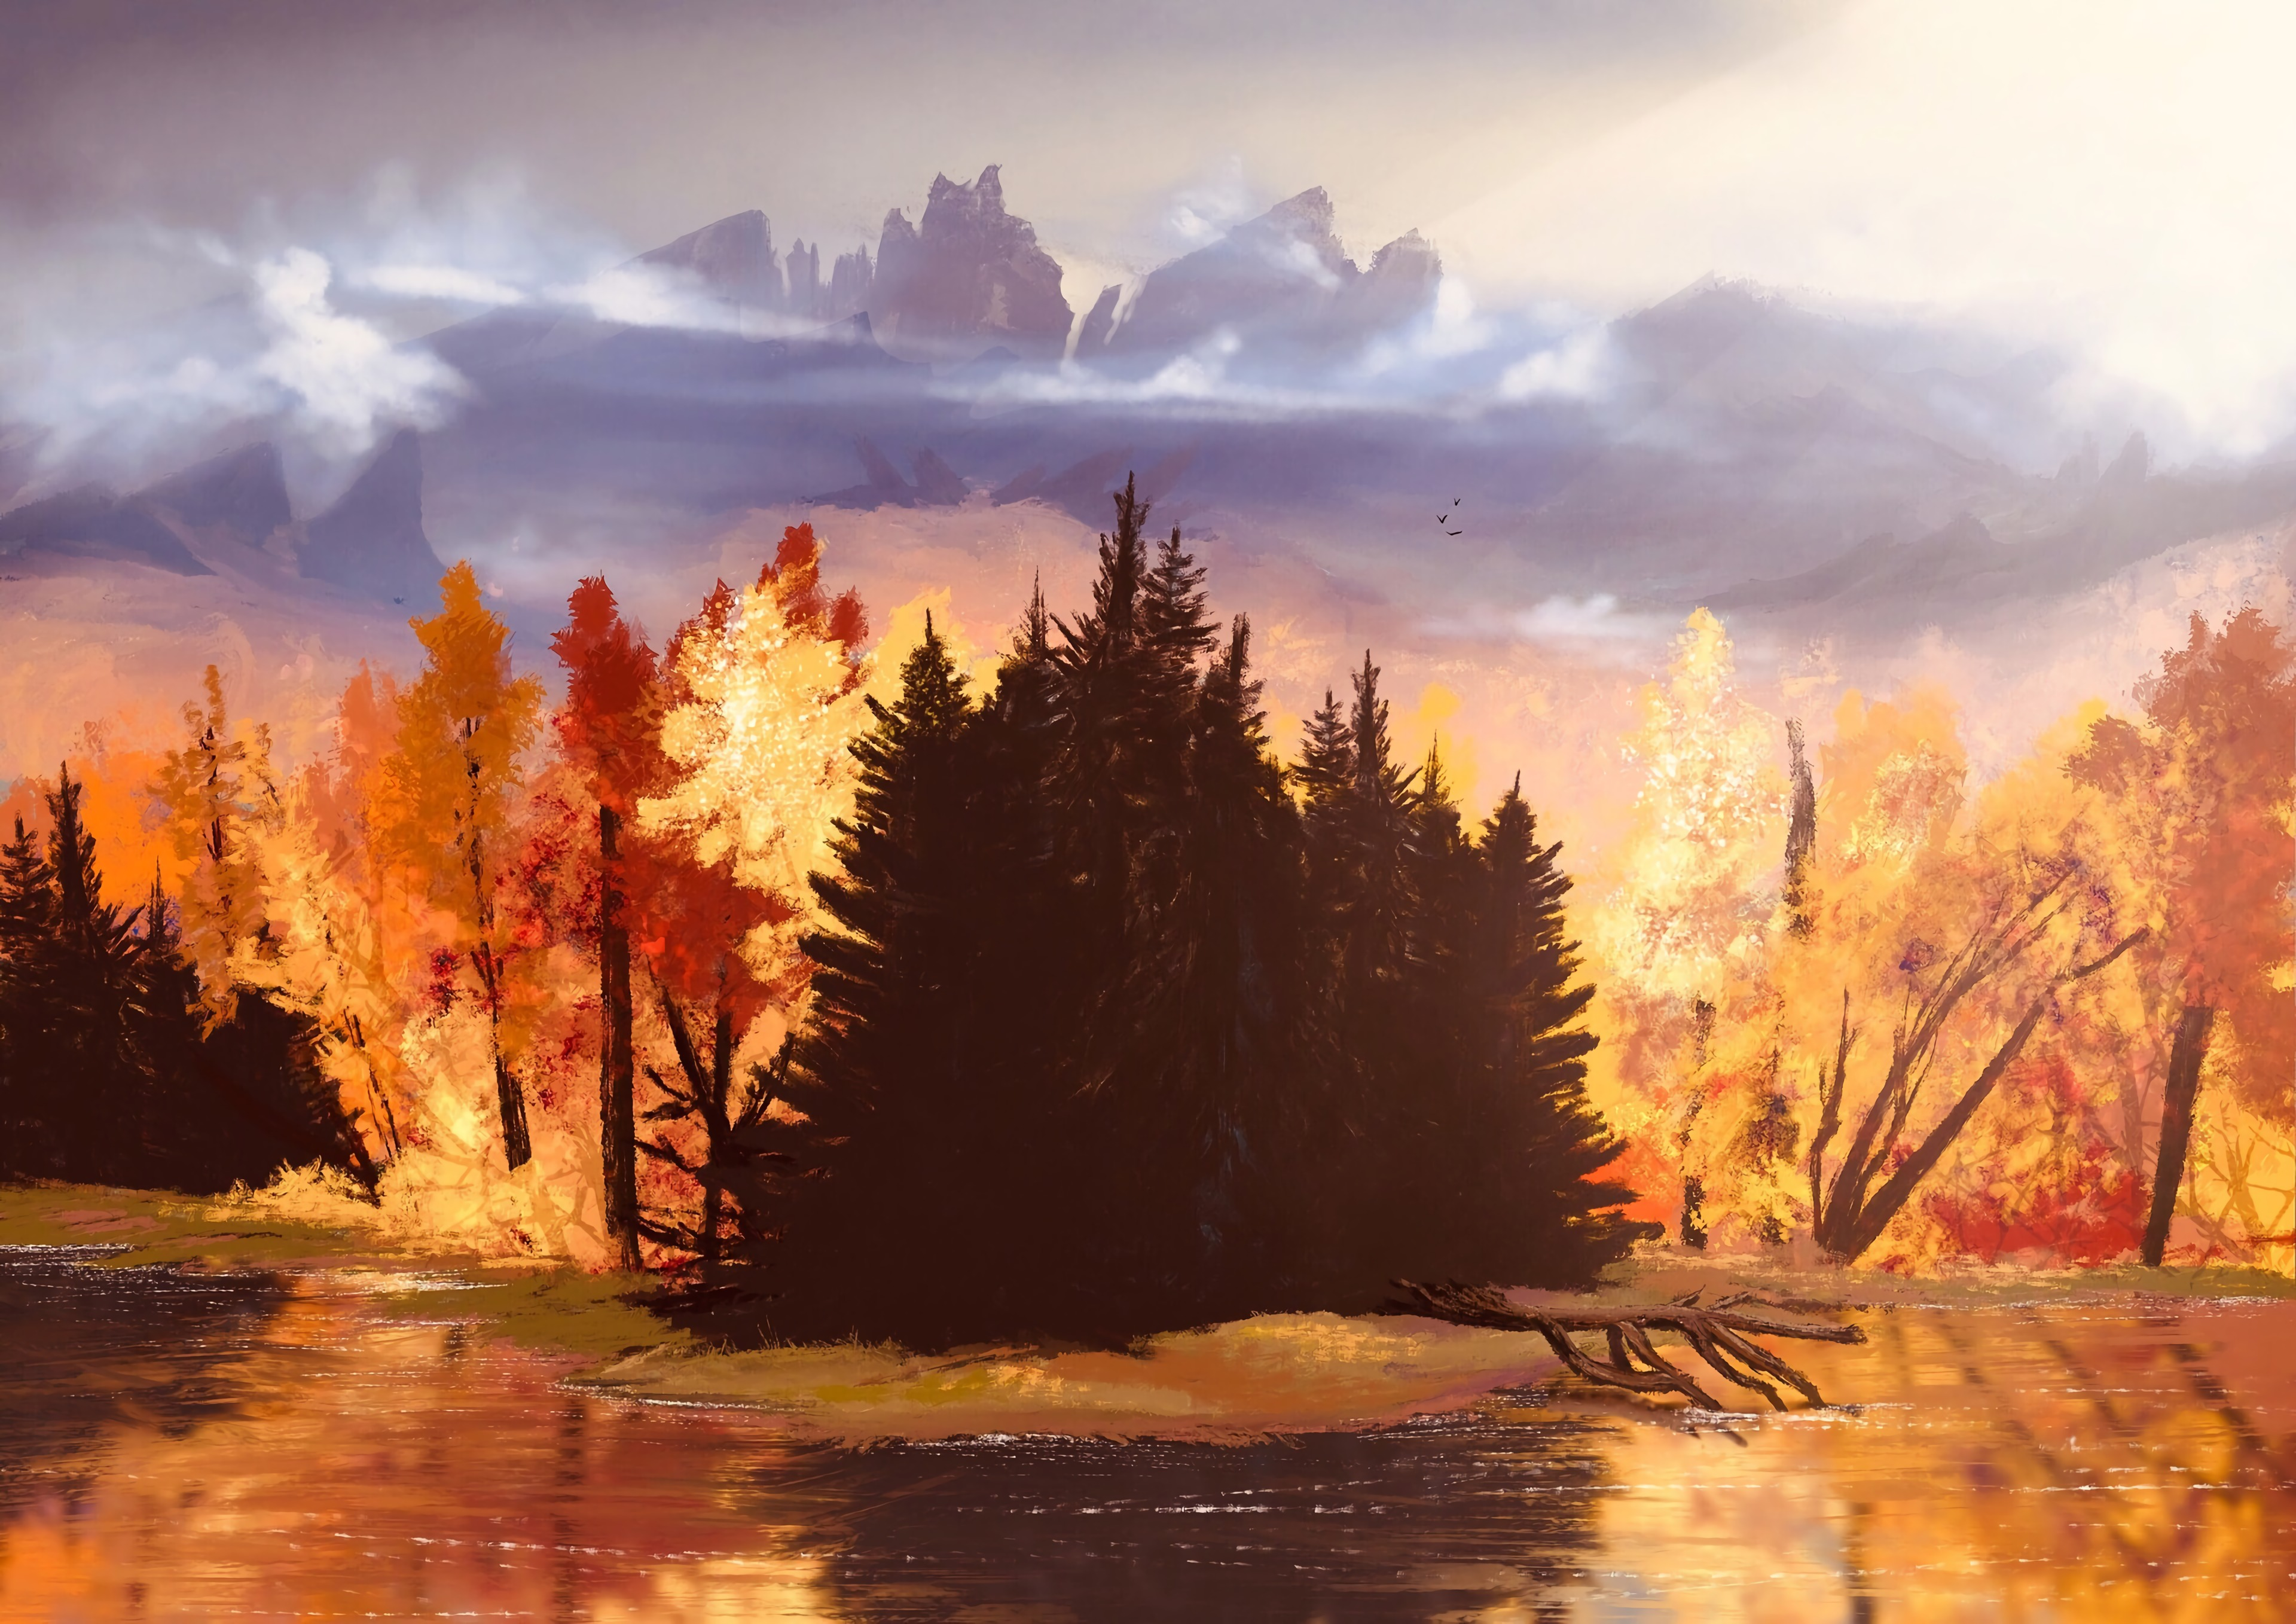 120692 free wallpaper 720x1520 for phone, download images Art, Autumn, Forest 720x1520 for mobile